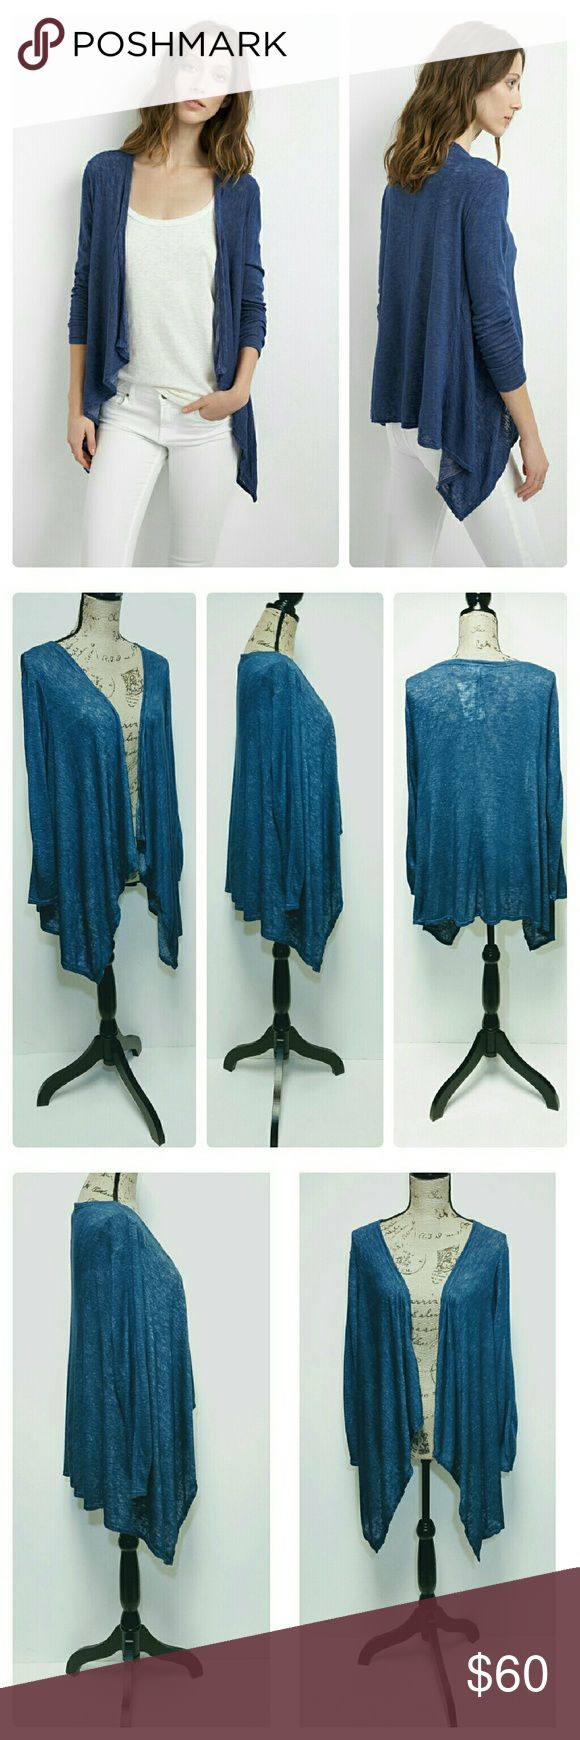 VELVET GRAHAM & SPENCER BLUE DAYO CARDIGAN Velvet by Graham & Spencer open front, 3/4 sleeve, drape cardigan. Size L. The Dayo cardigan is crafted from super soft lightweight textured knit. Color is Coastline/blue. Long drape in front and shorter in back with a length just above the hips. Front drape is below the hips. NWT. Velvet by Graham & Spencer Sweaters Cardigans